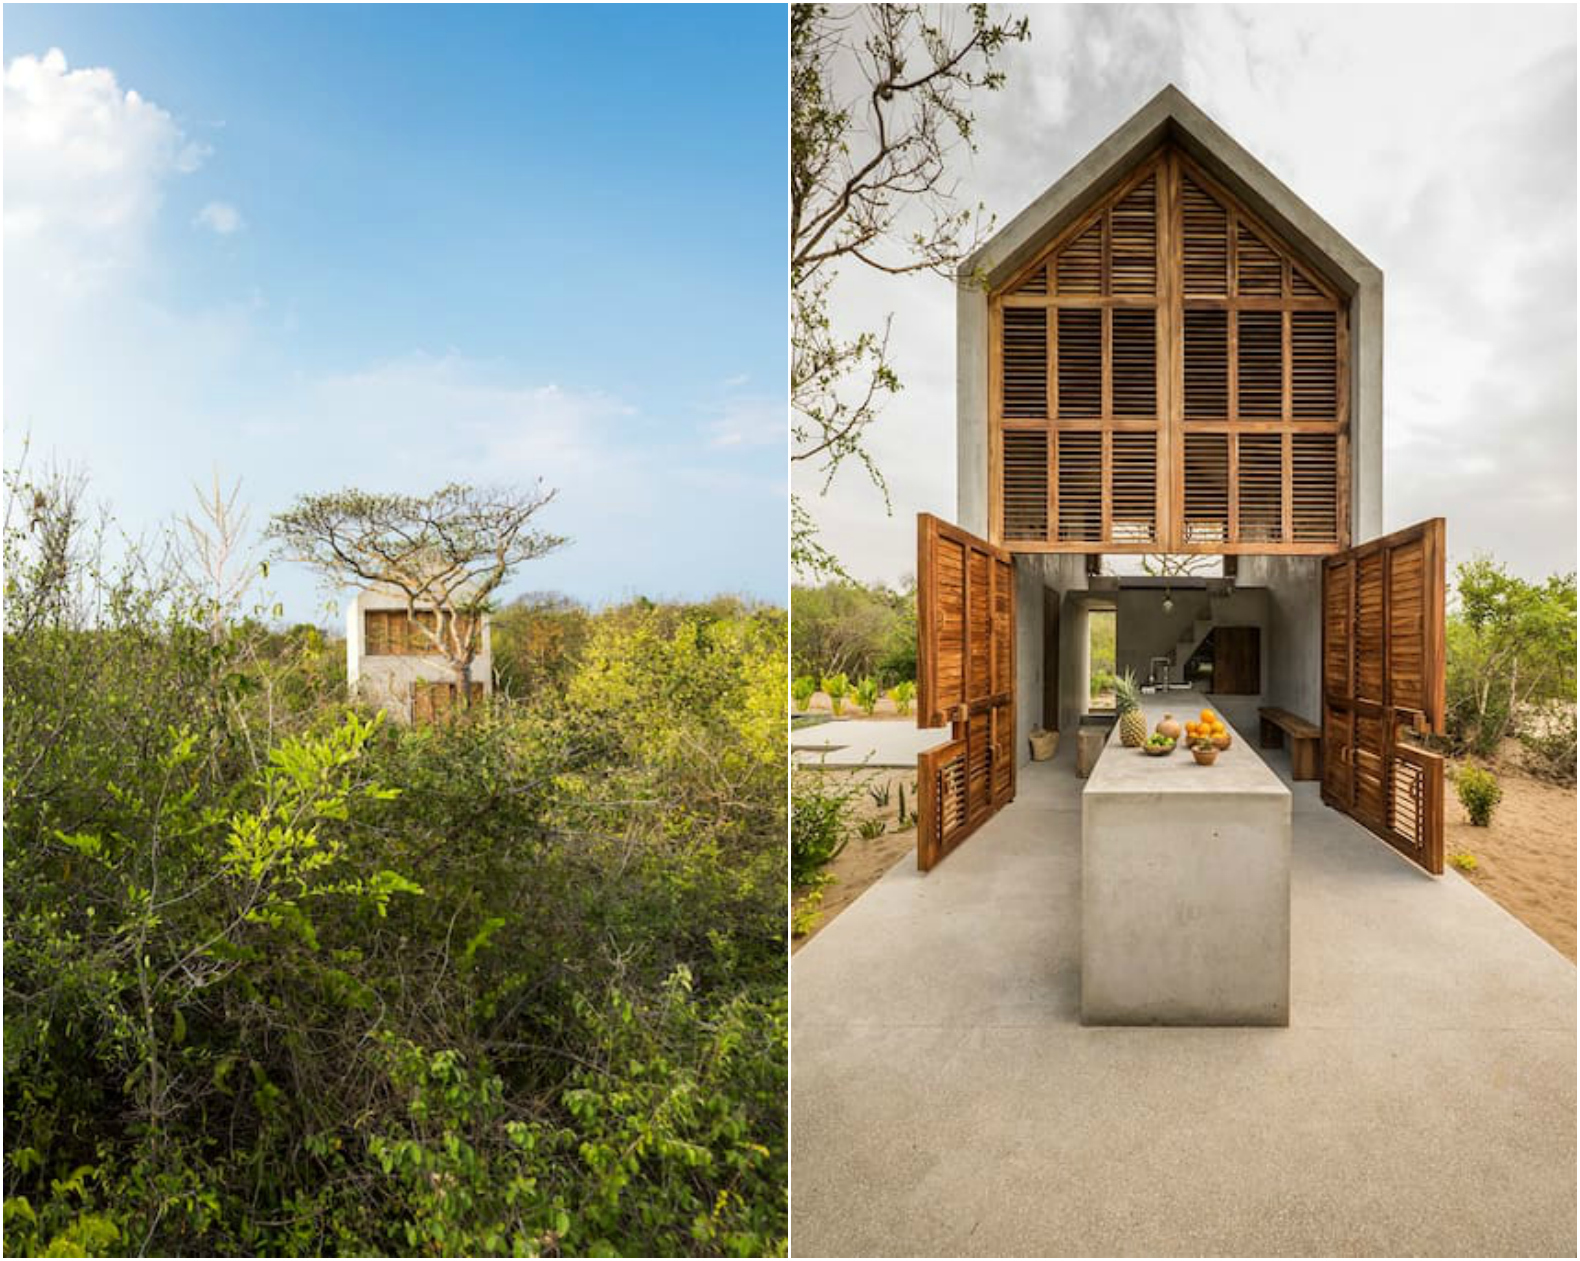 Go way way off grid at this amazing tiny house Airbnb in Oaxaca